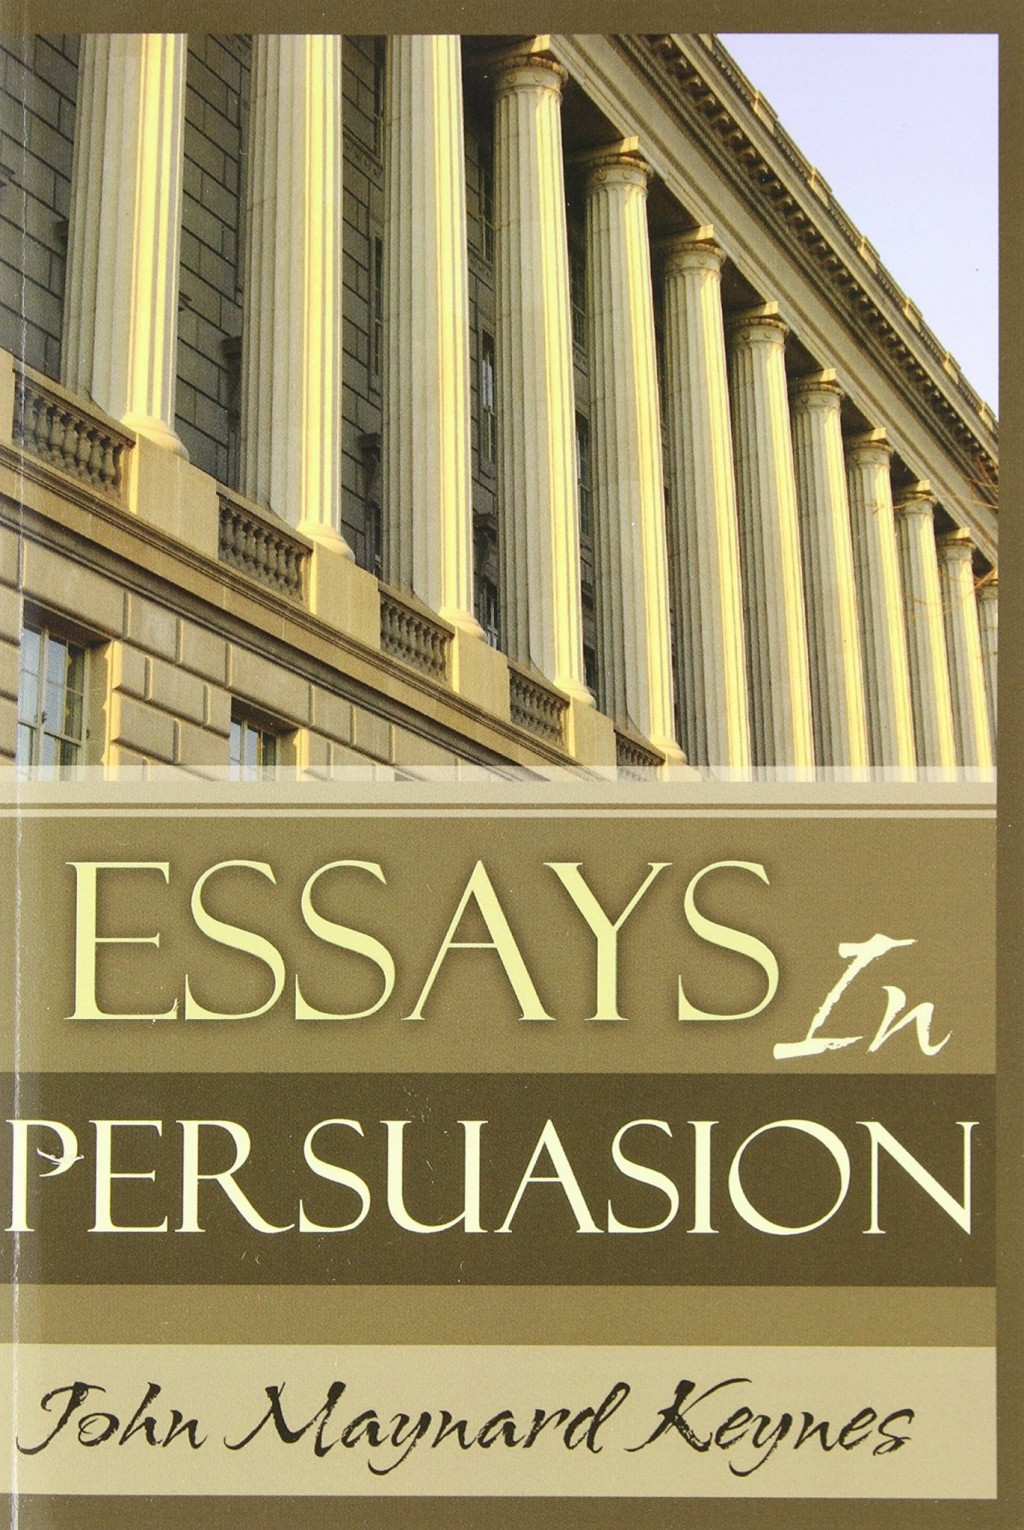 002 Essays In Persuasion By John Maynard Keynes Essay Remarkable 1931 Wikipedia Summary Large